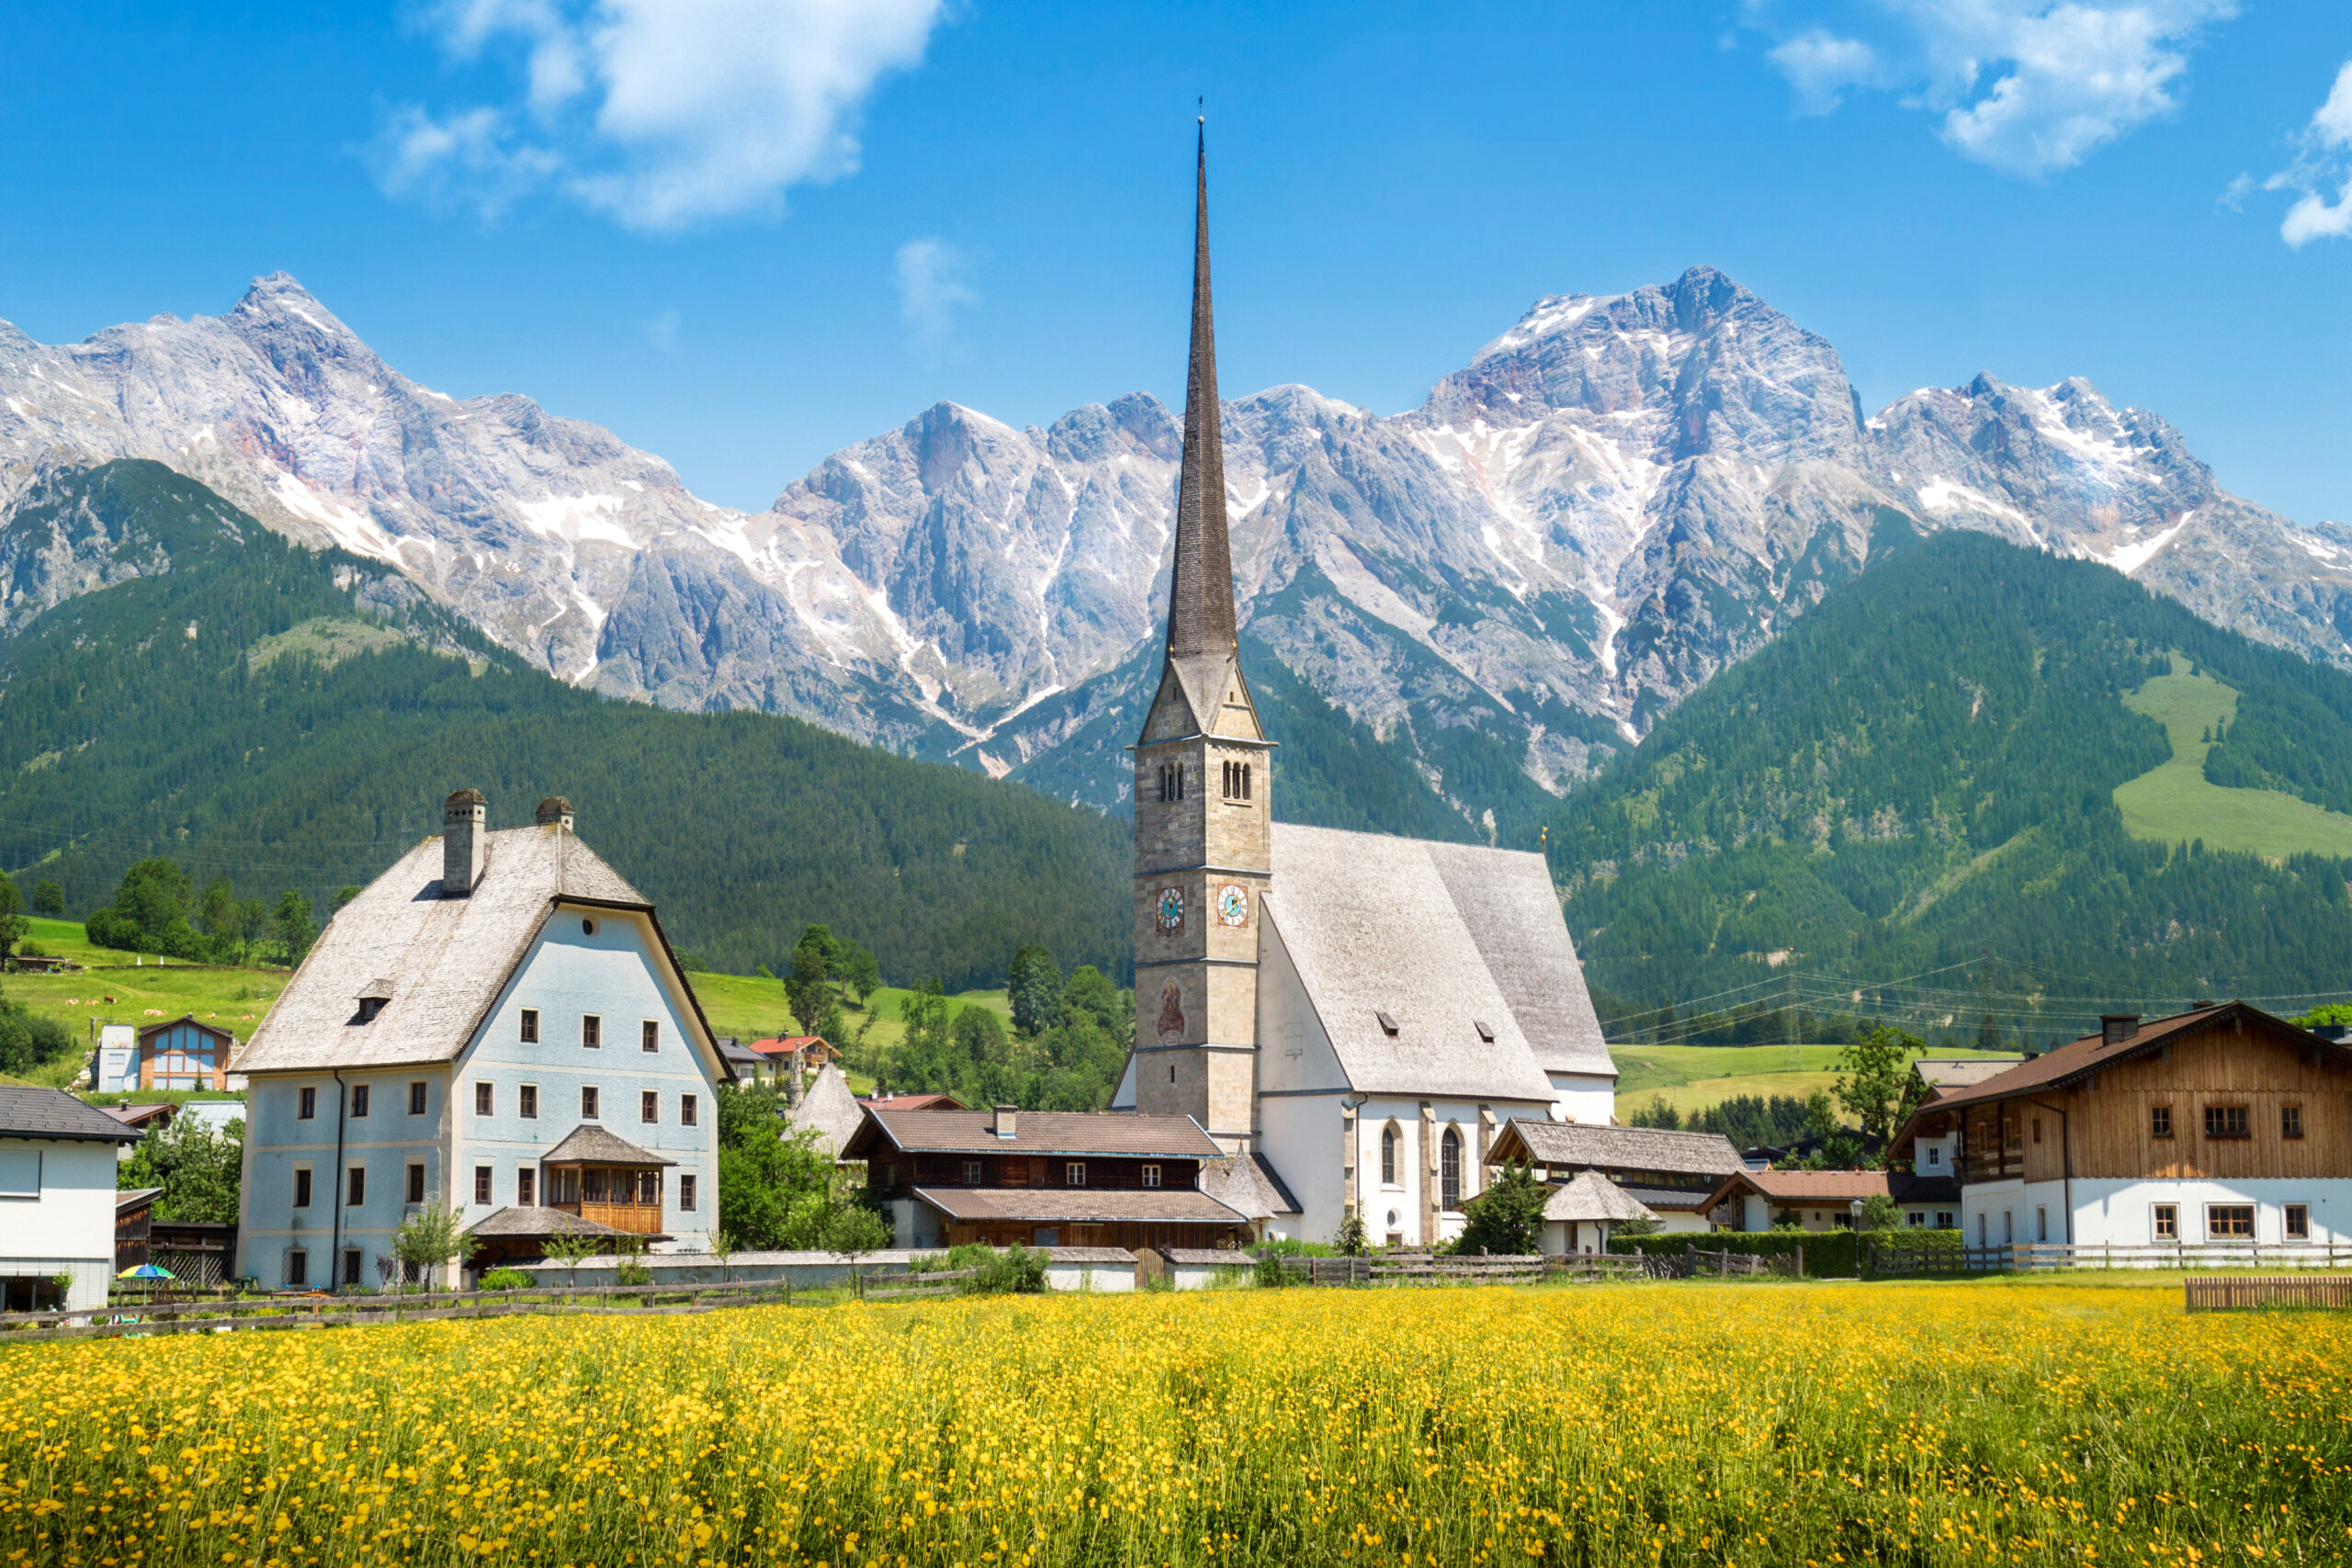 Photo of Maria Alm, a small town in Austria. Lime green grasses are seen the the foreground. A church is in the middle with some smaller buildings on either side. There is a beautiful contrast of lush green and snowy mountains in the background.